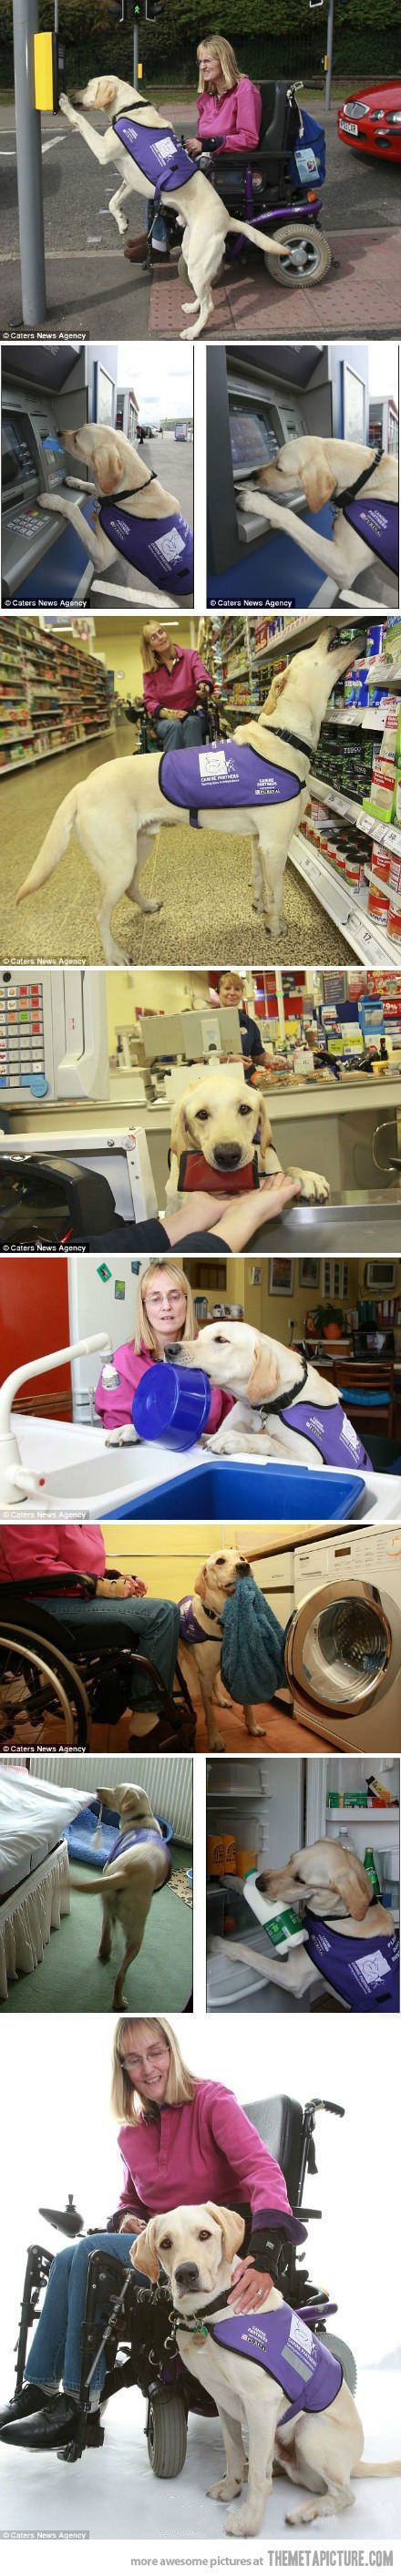 These dogs are amazing.  I am proud to have a retired assistance dog.: Awesome Dogs, Cat, Best Friends, Amazing Dogs, My Heart, Service Dogs, So Sweet, Work Dogs, Animal